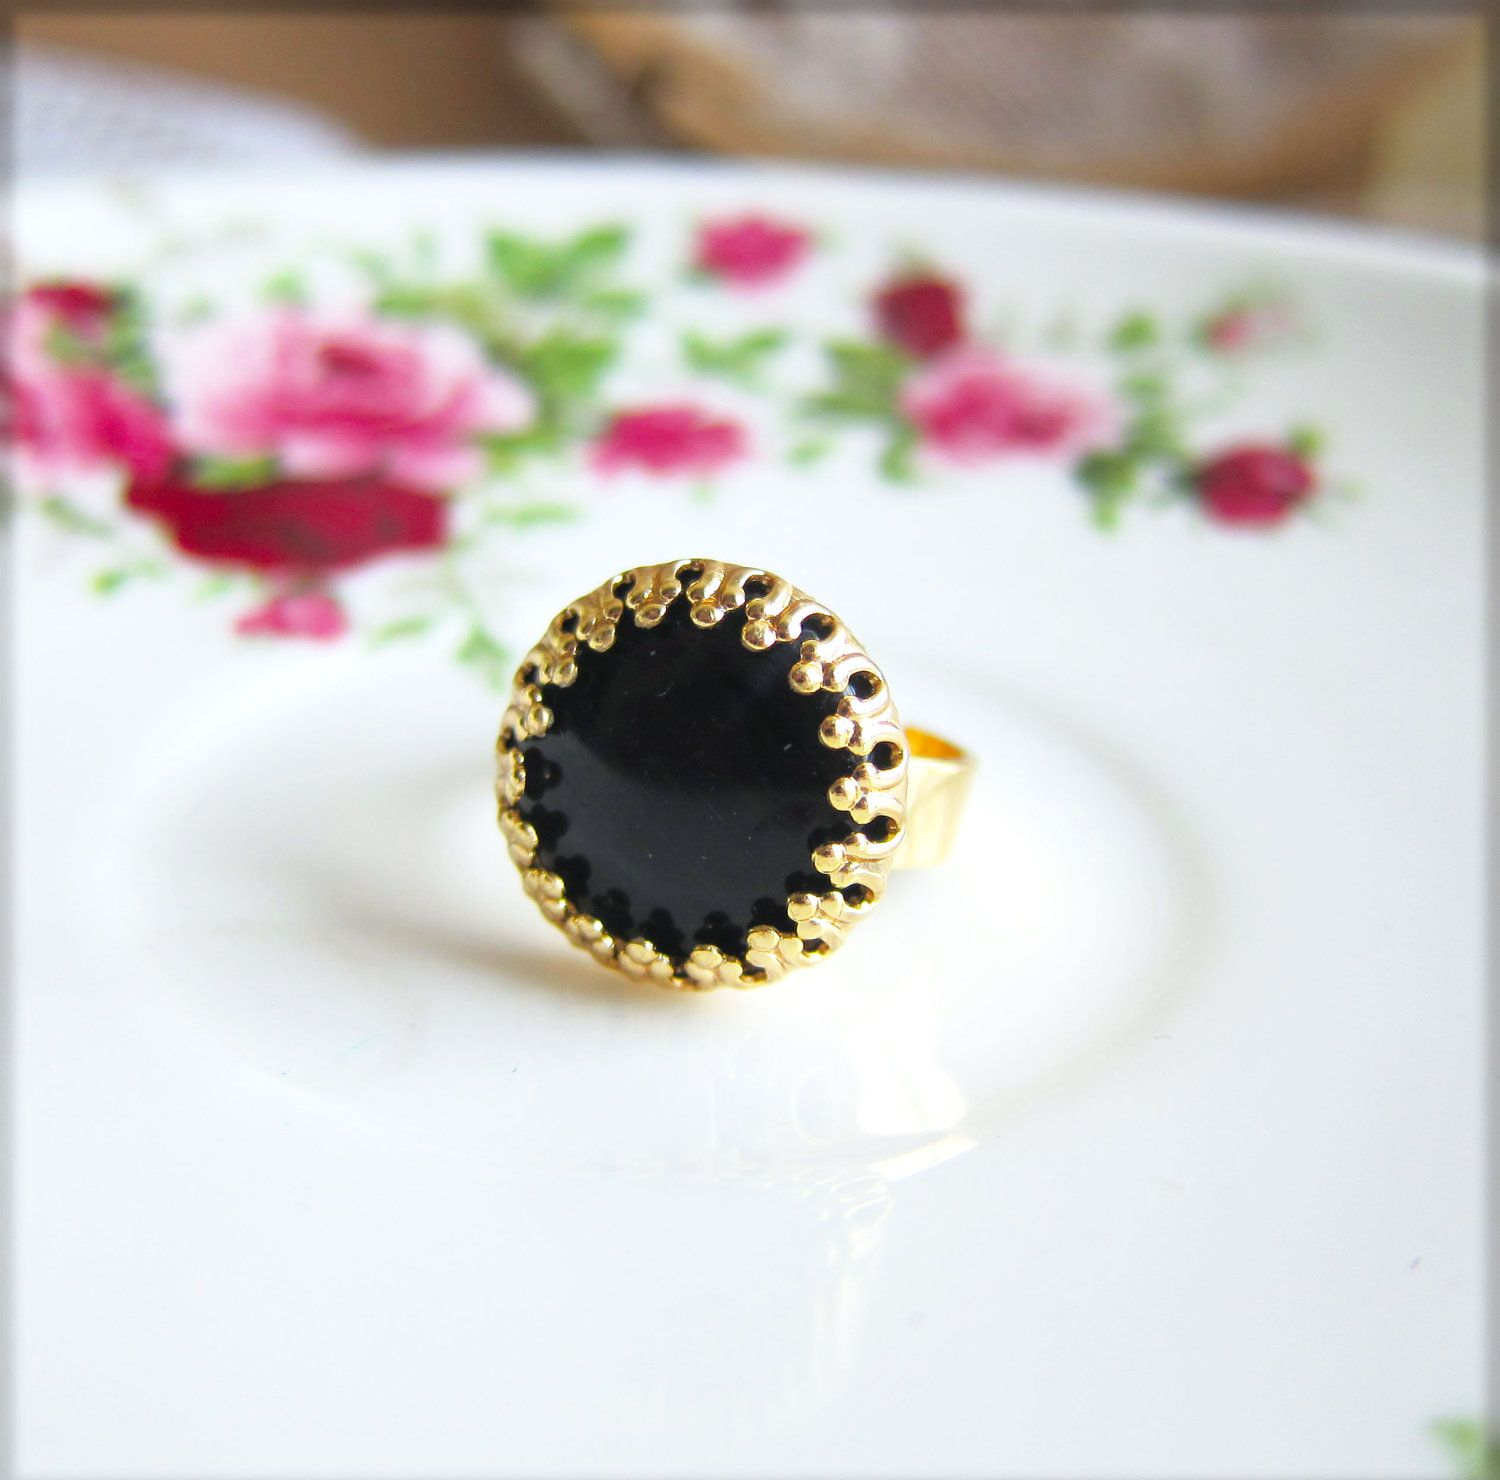 Lord of the Rings Onyx Black Gold Ring Black Ring Black Glass Ring Cocktail Ring Statement Ring 18k Gold Plated Adjustable Ring. $12.00, via Etsy.